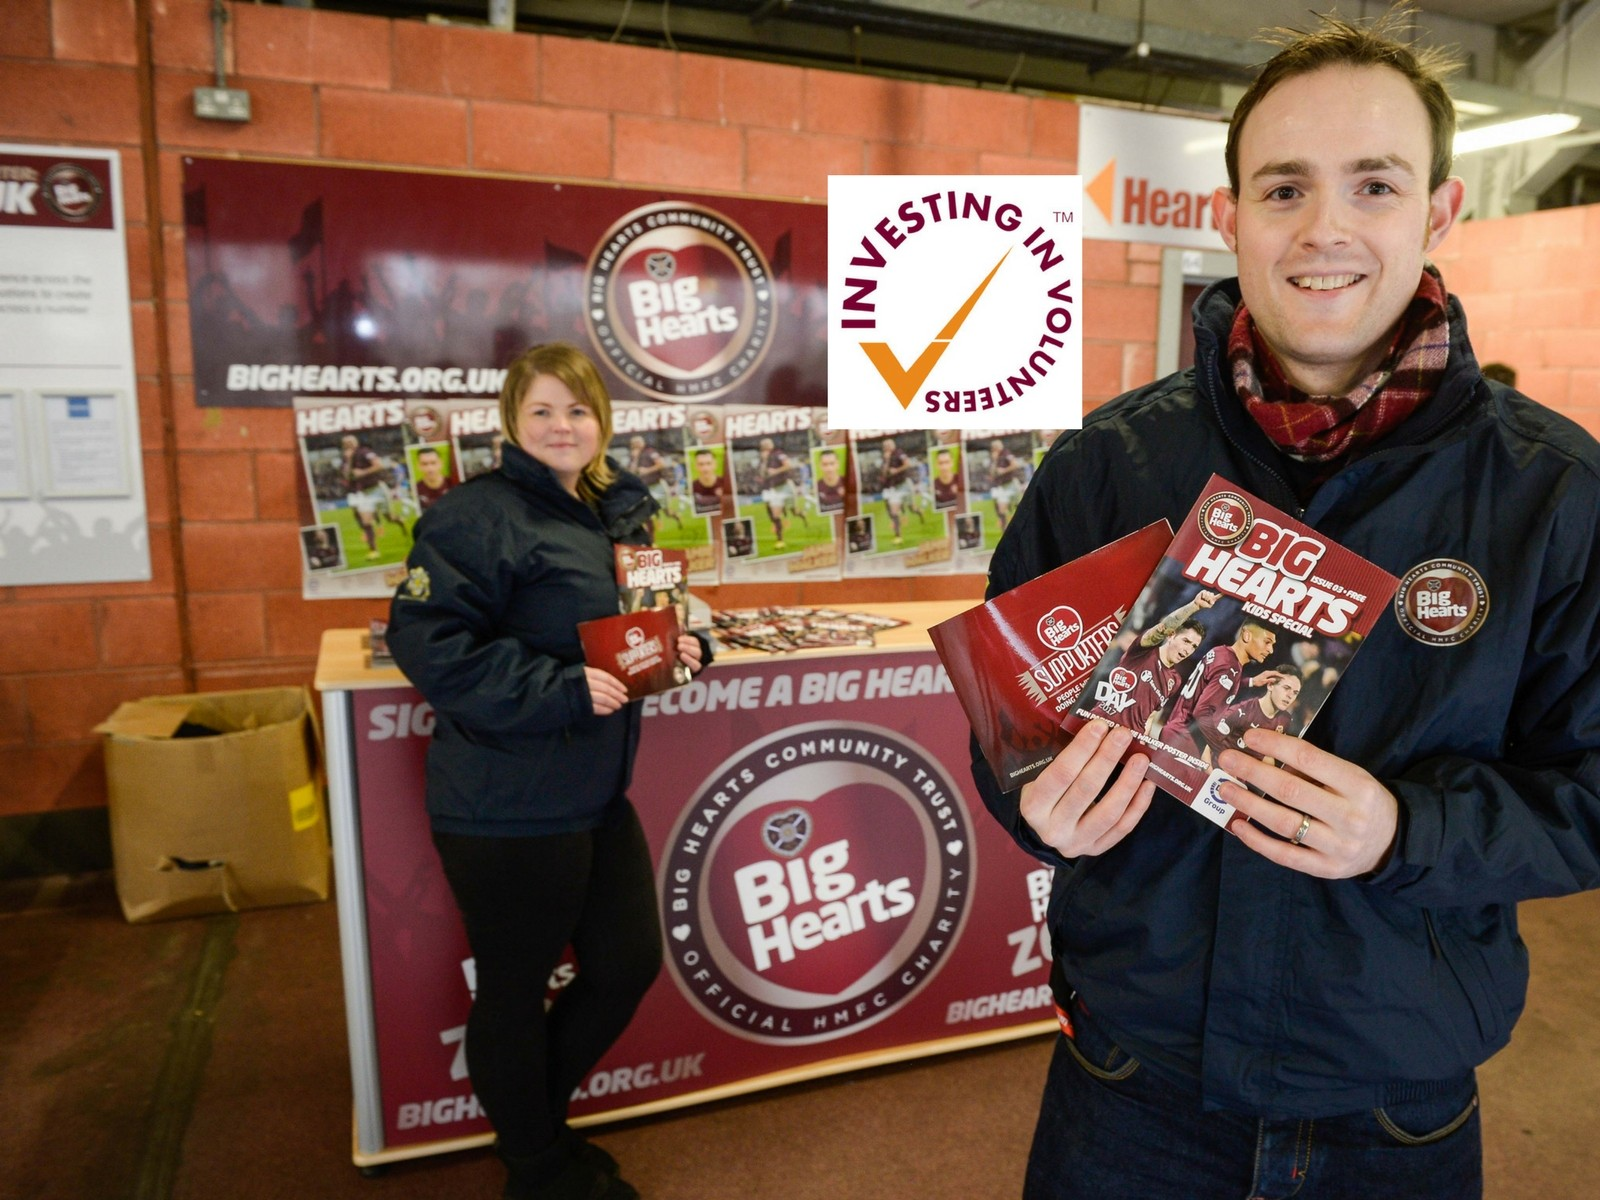 » Big Hearts, 1st charity in Scottish Football receiving the 'Investing in Volunteers' Award!